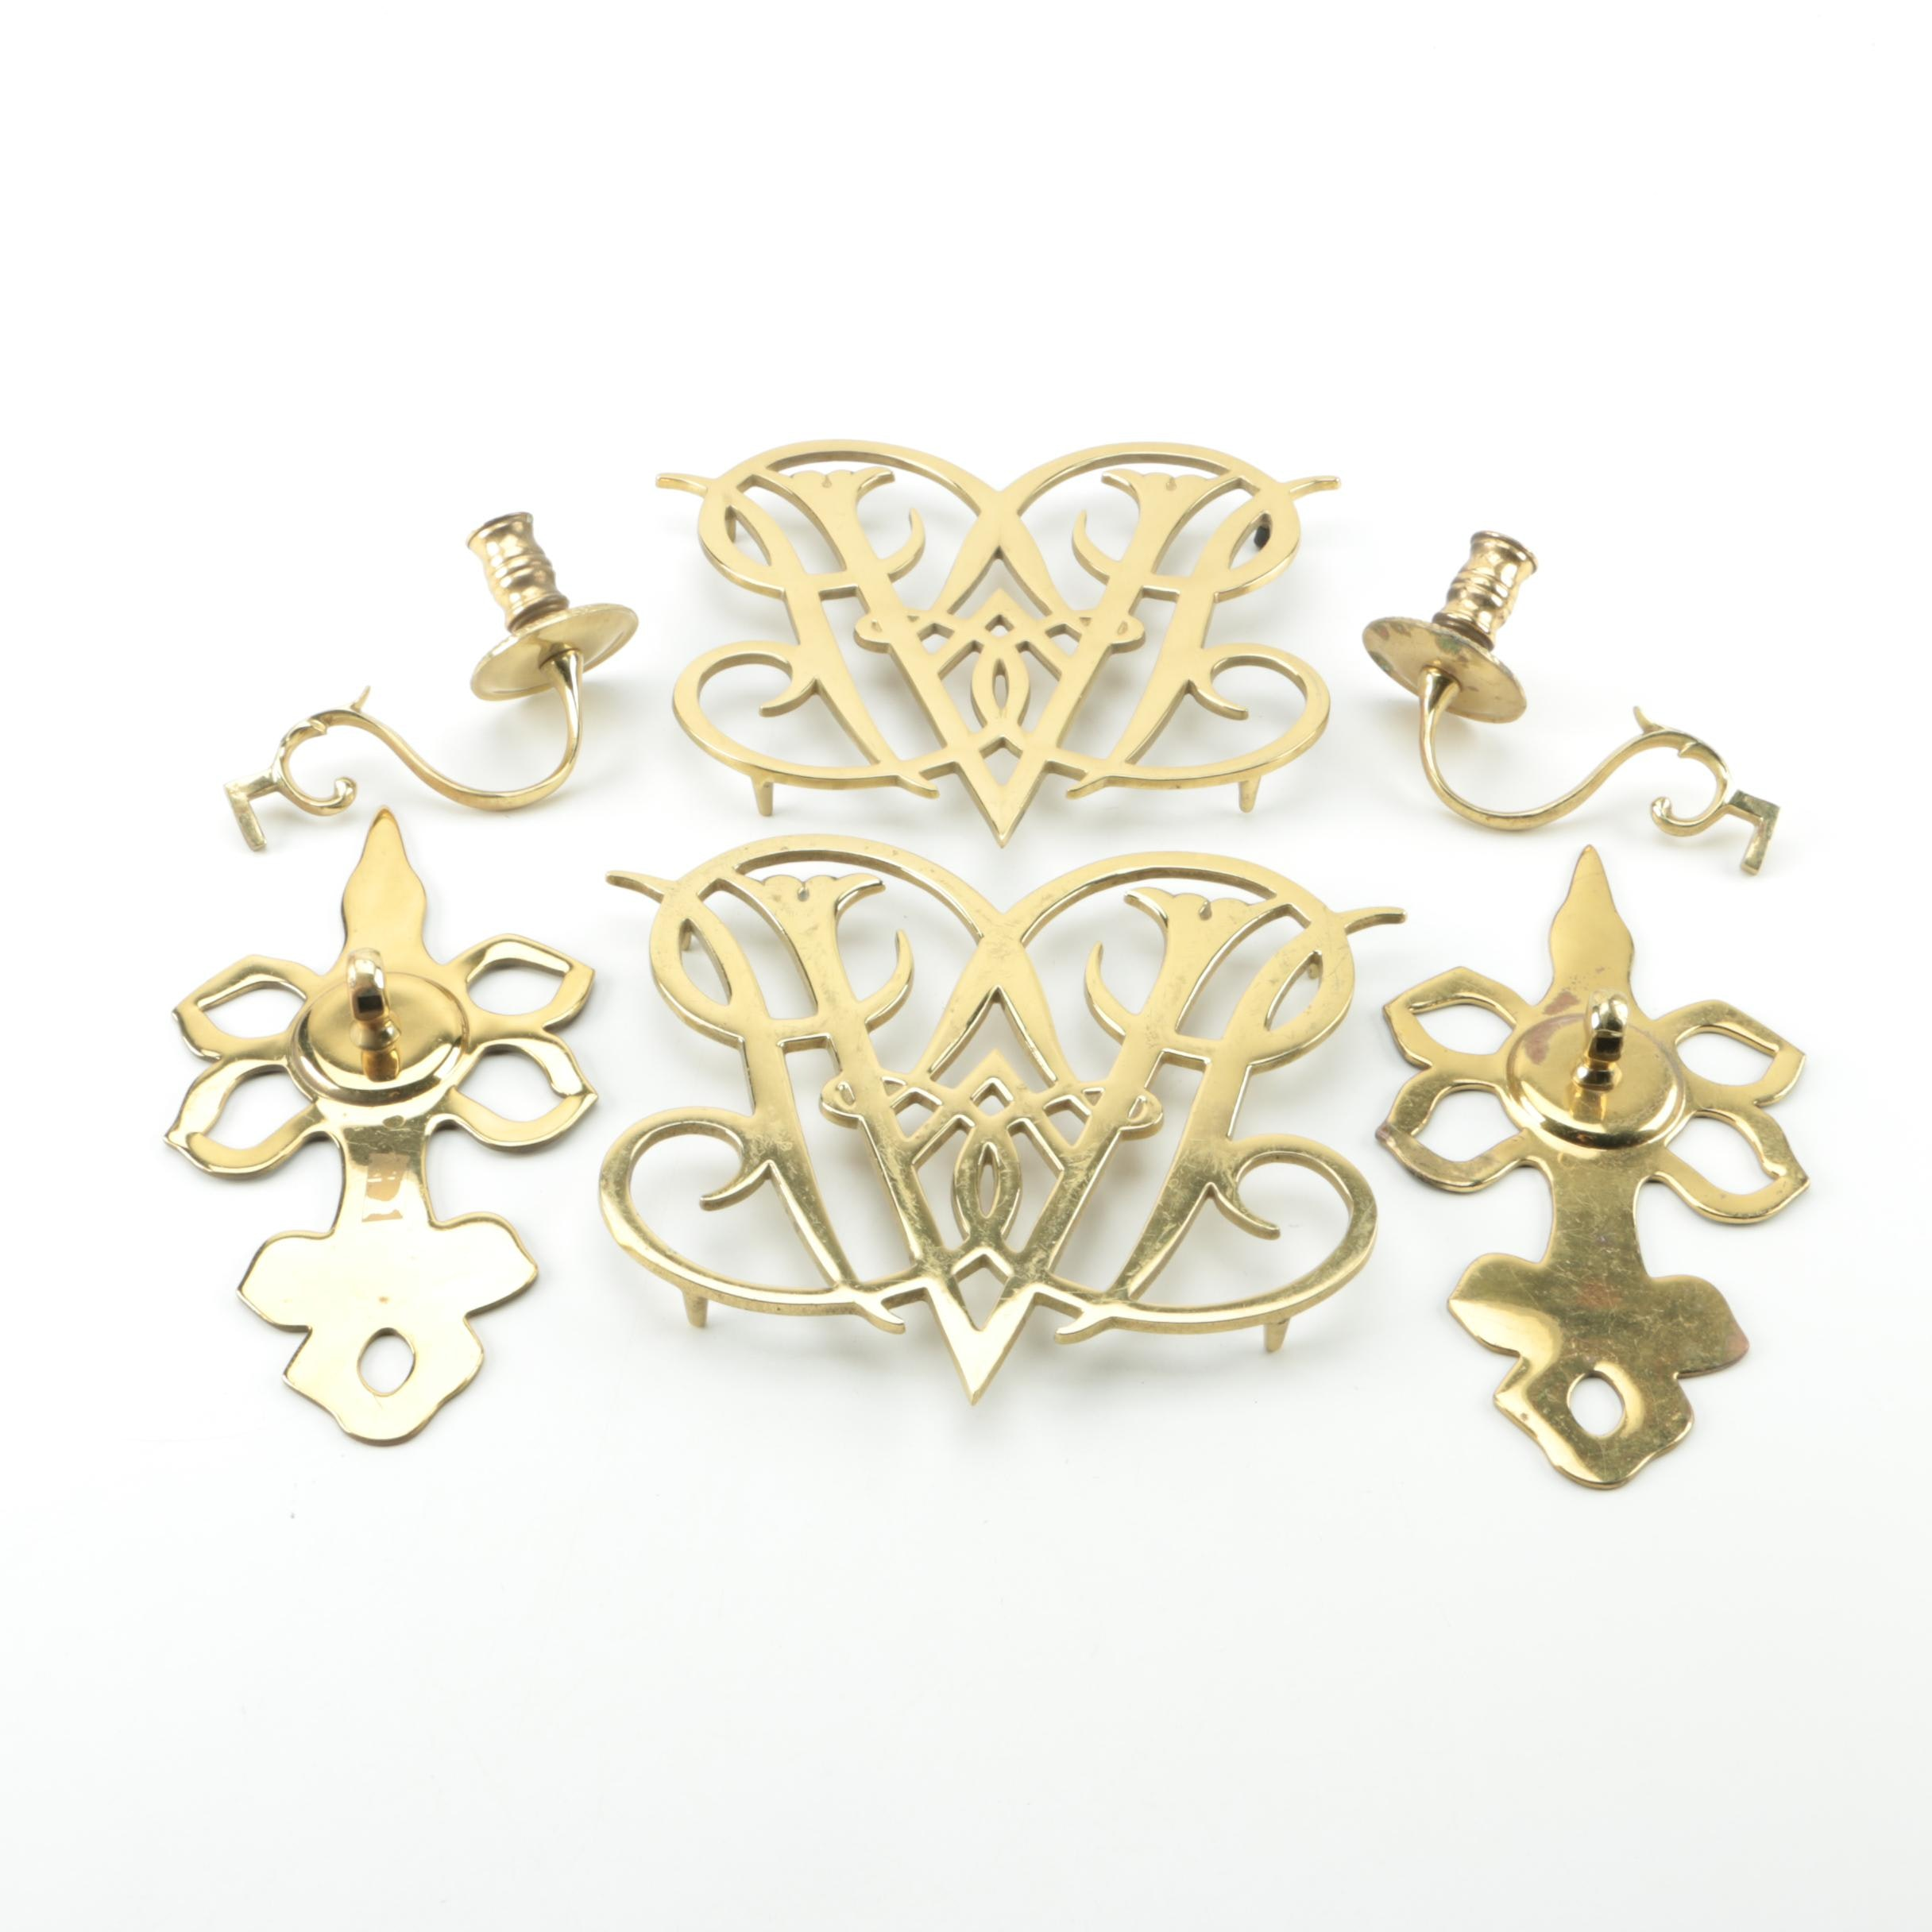 """Williamsburg """"William and Mary"""" Brass Trivets with Candle Holders and Hardware"""